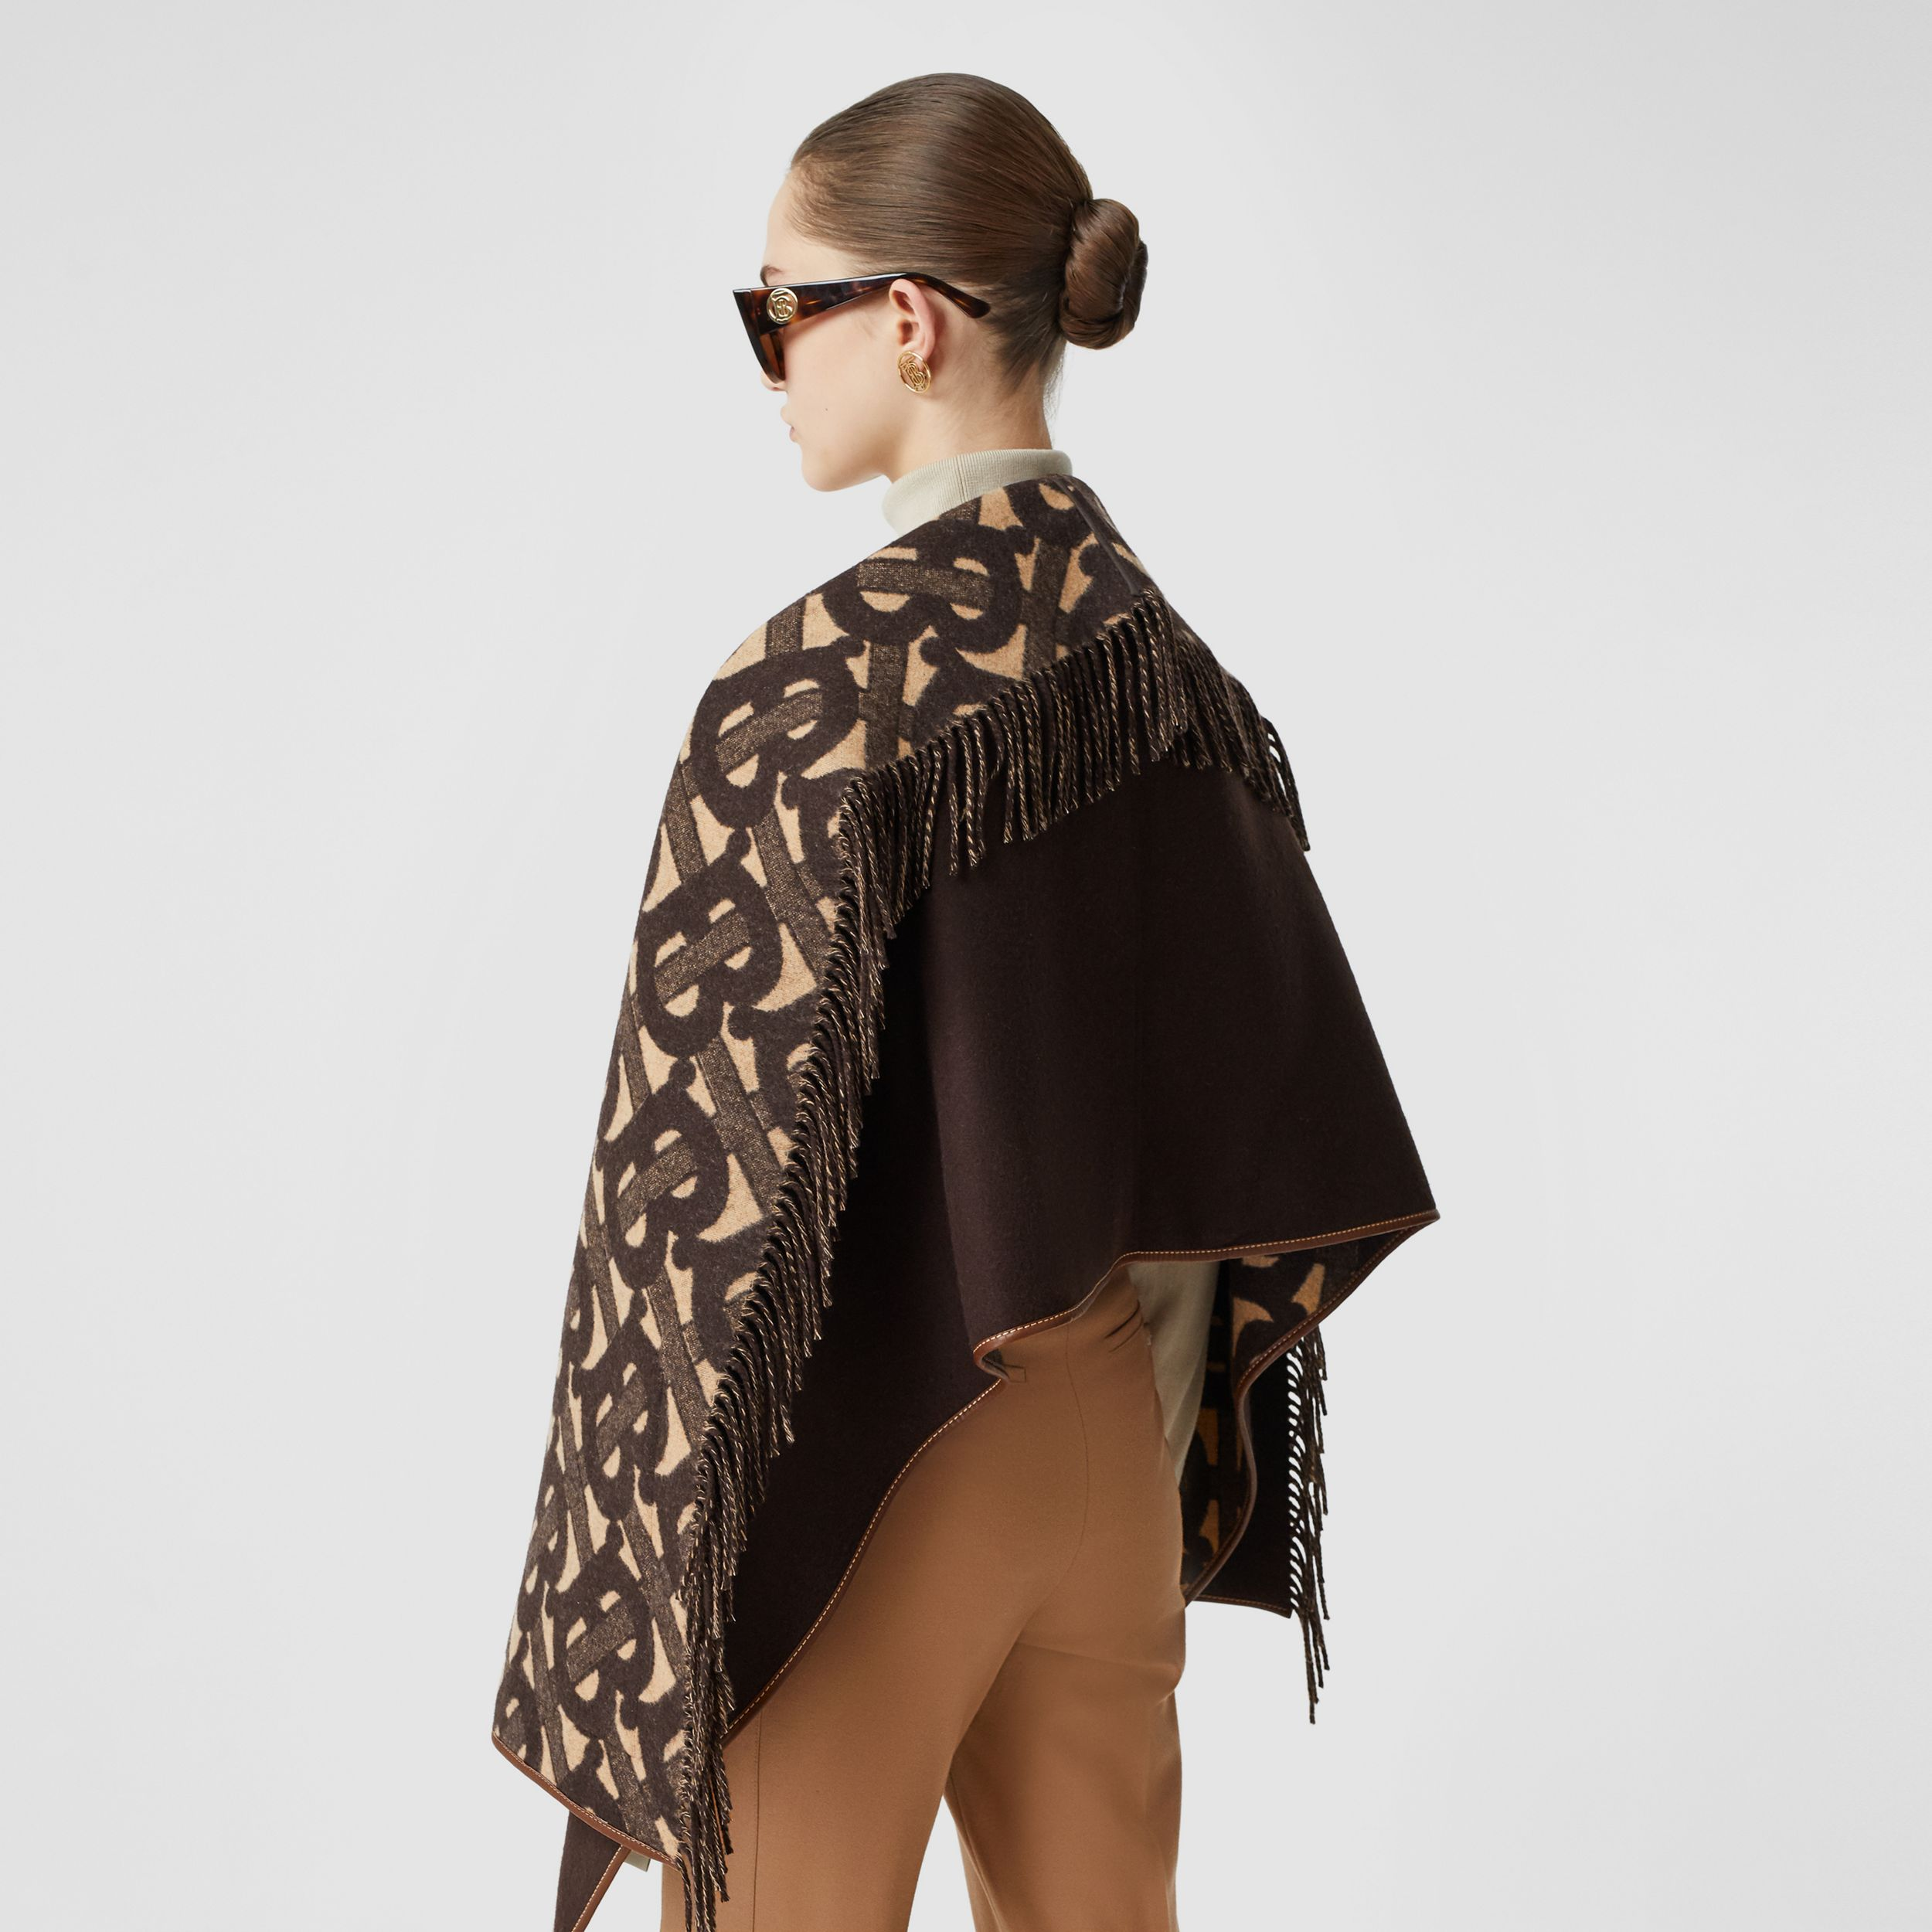 Monogram Merino Wool Cashmere Jacquard Cape in Deep Brown - Women | Burberry - 3